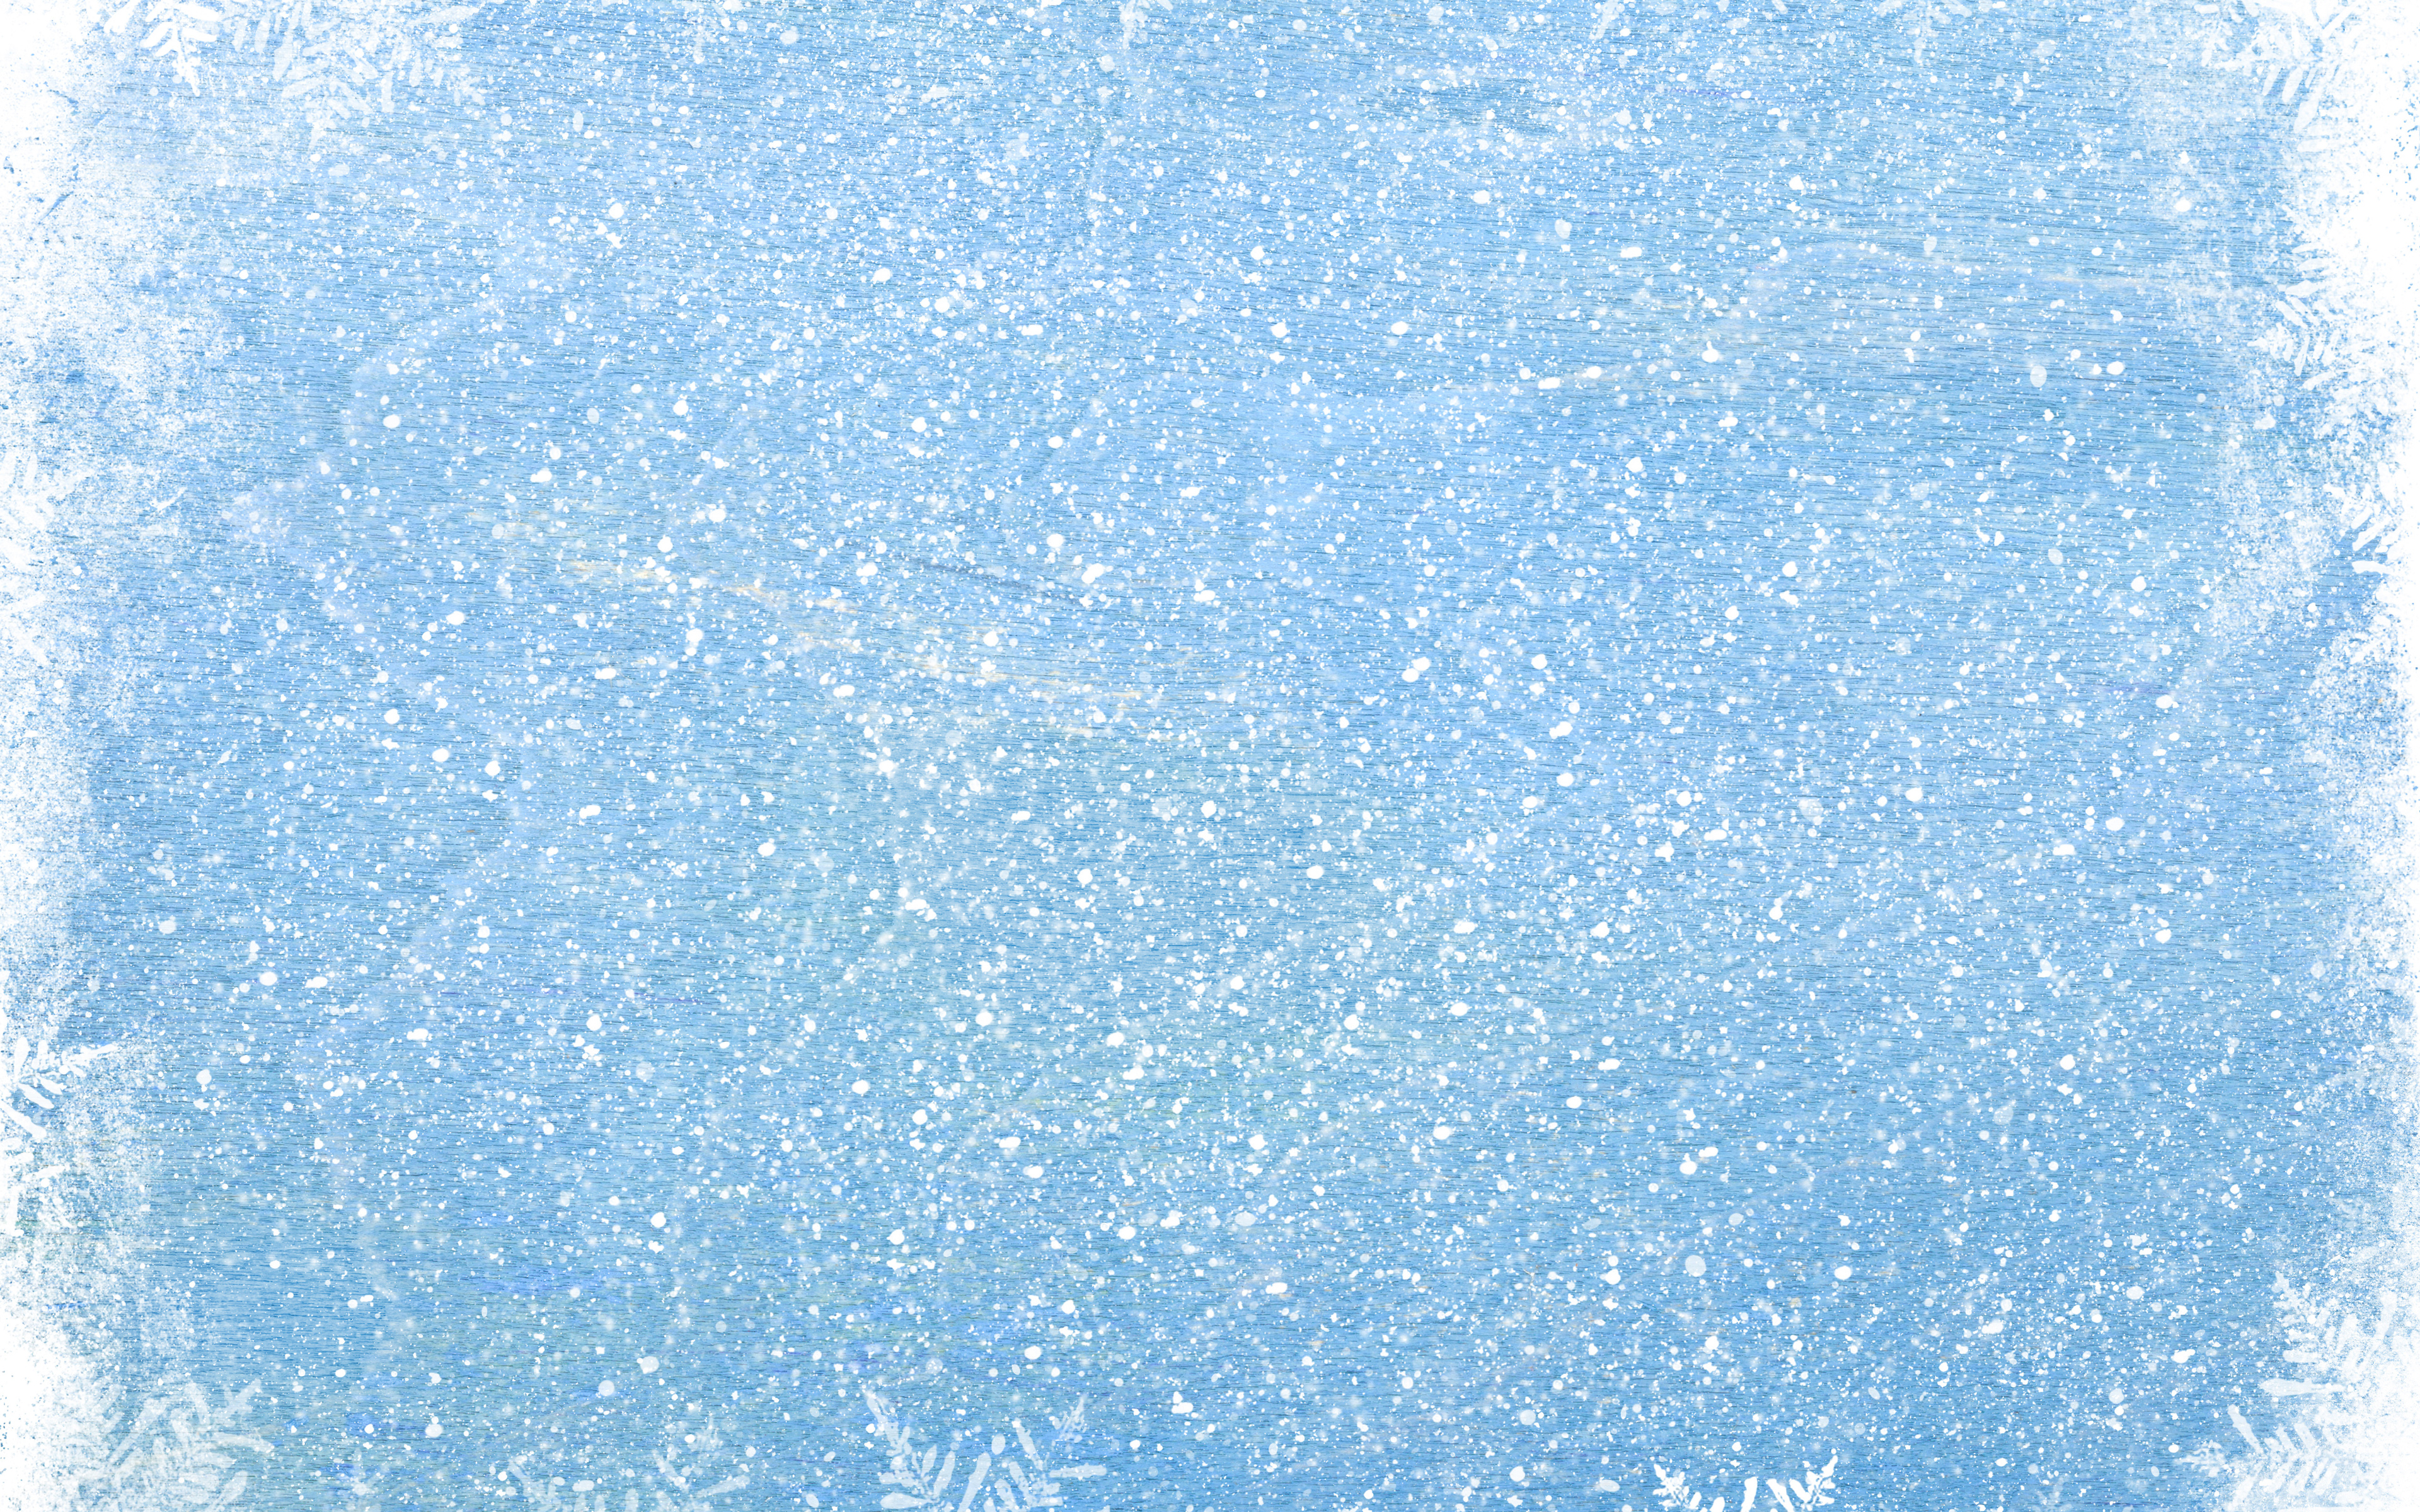 Download wallpapers ice texture, frost, snow, winter, winter blue ...